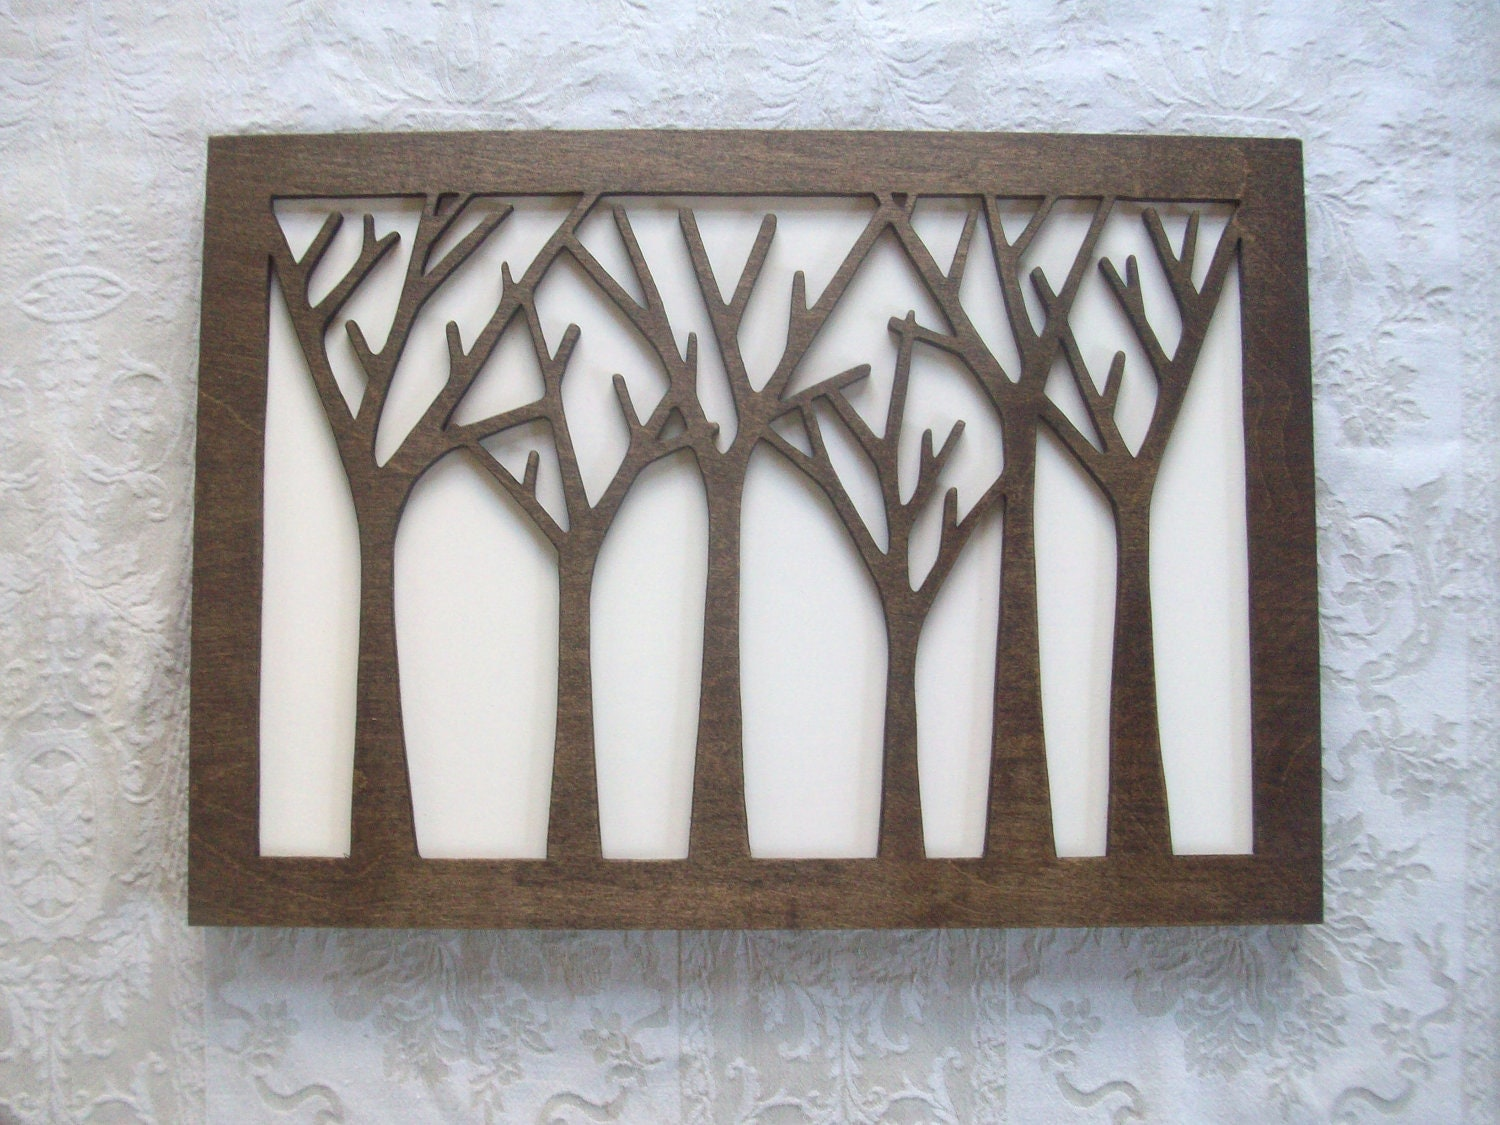 Popular items for wood wall on Etsy